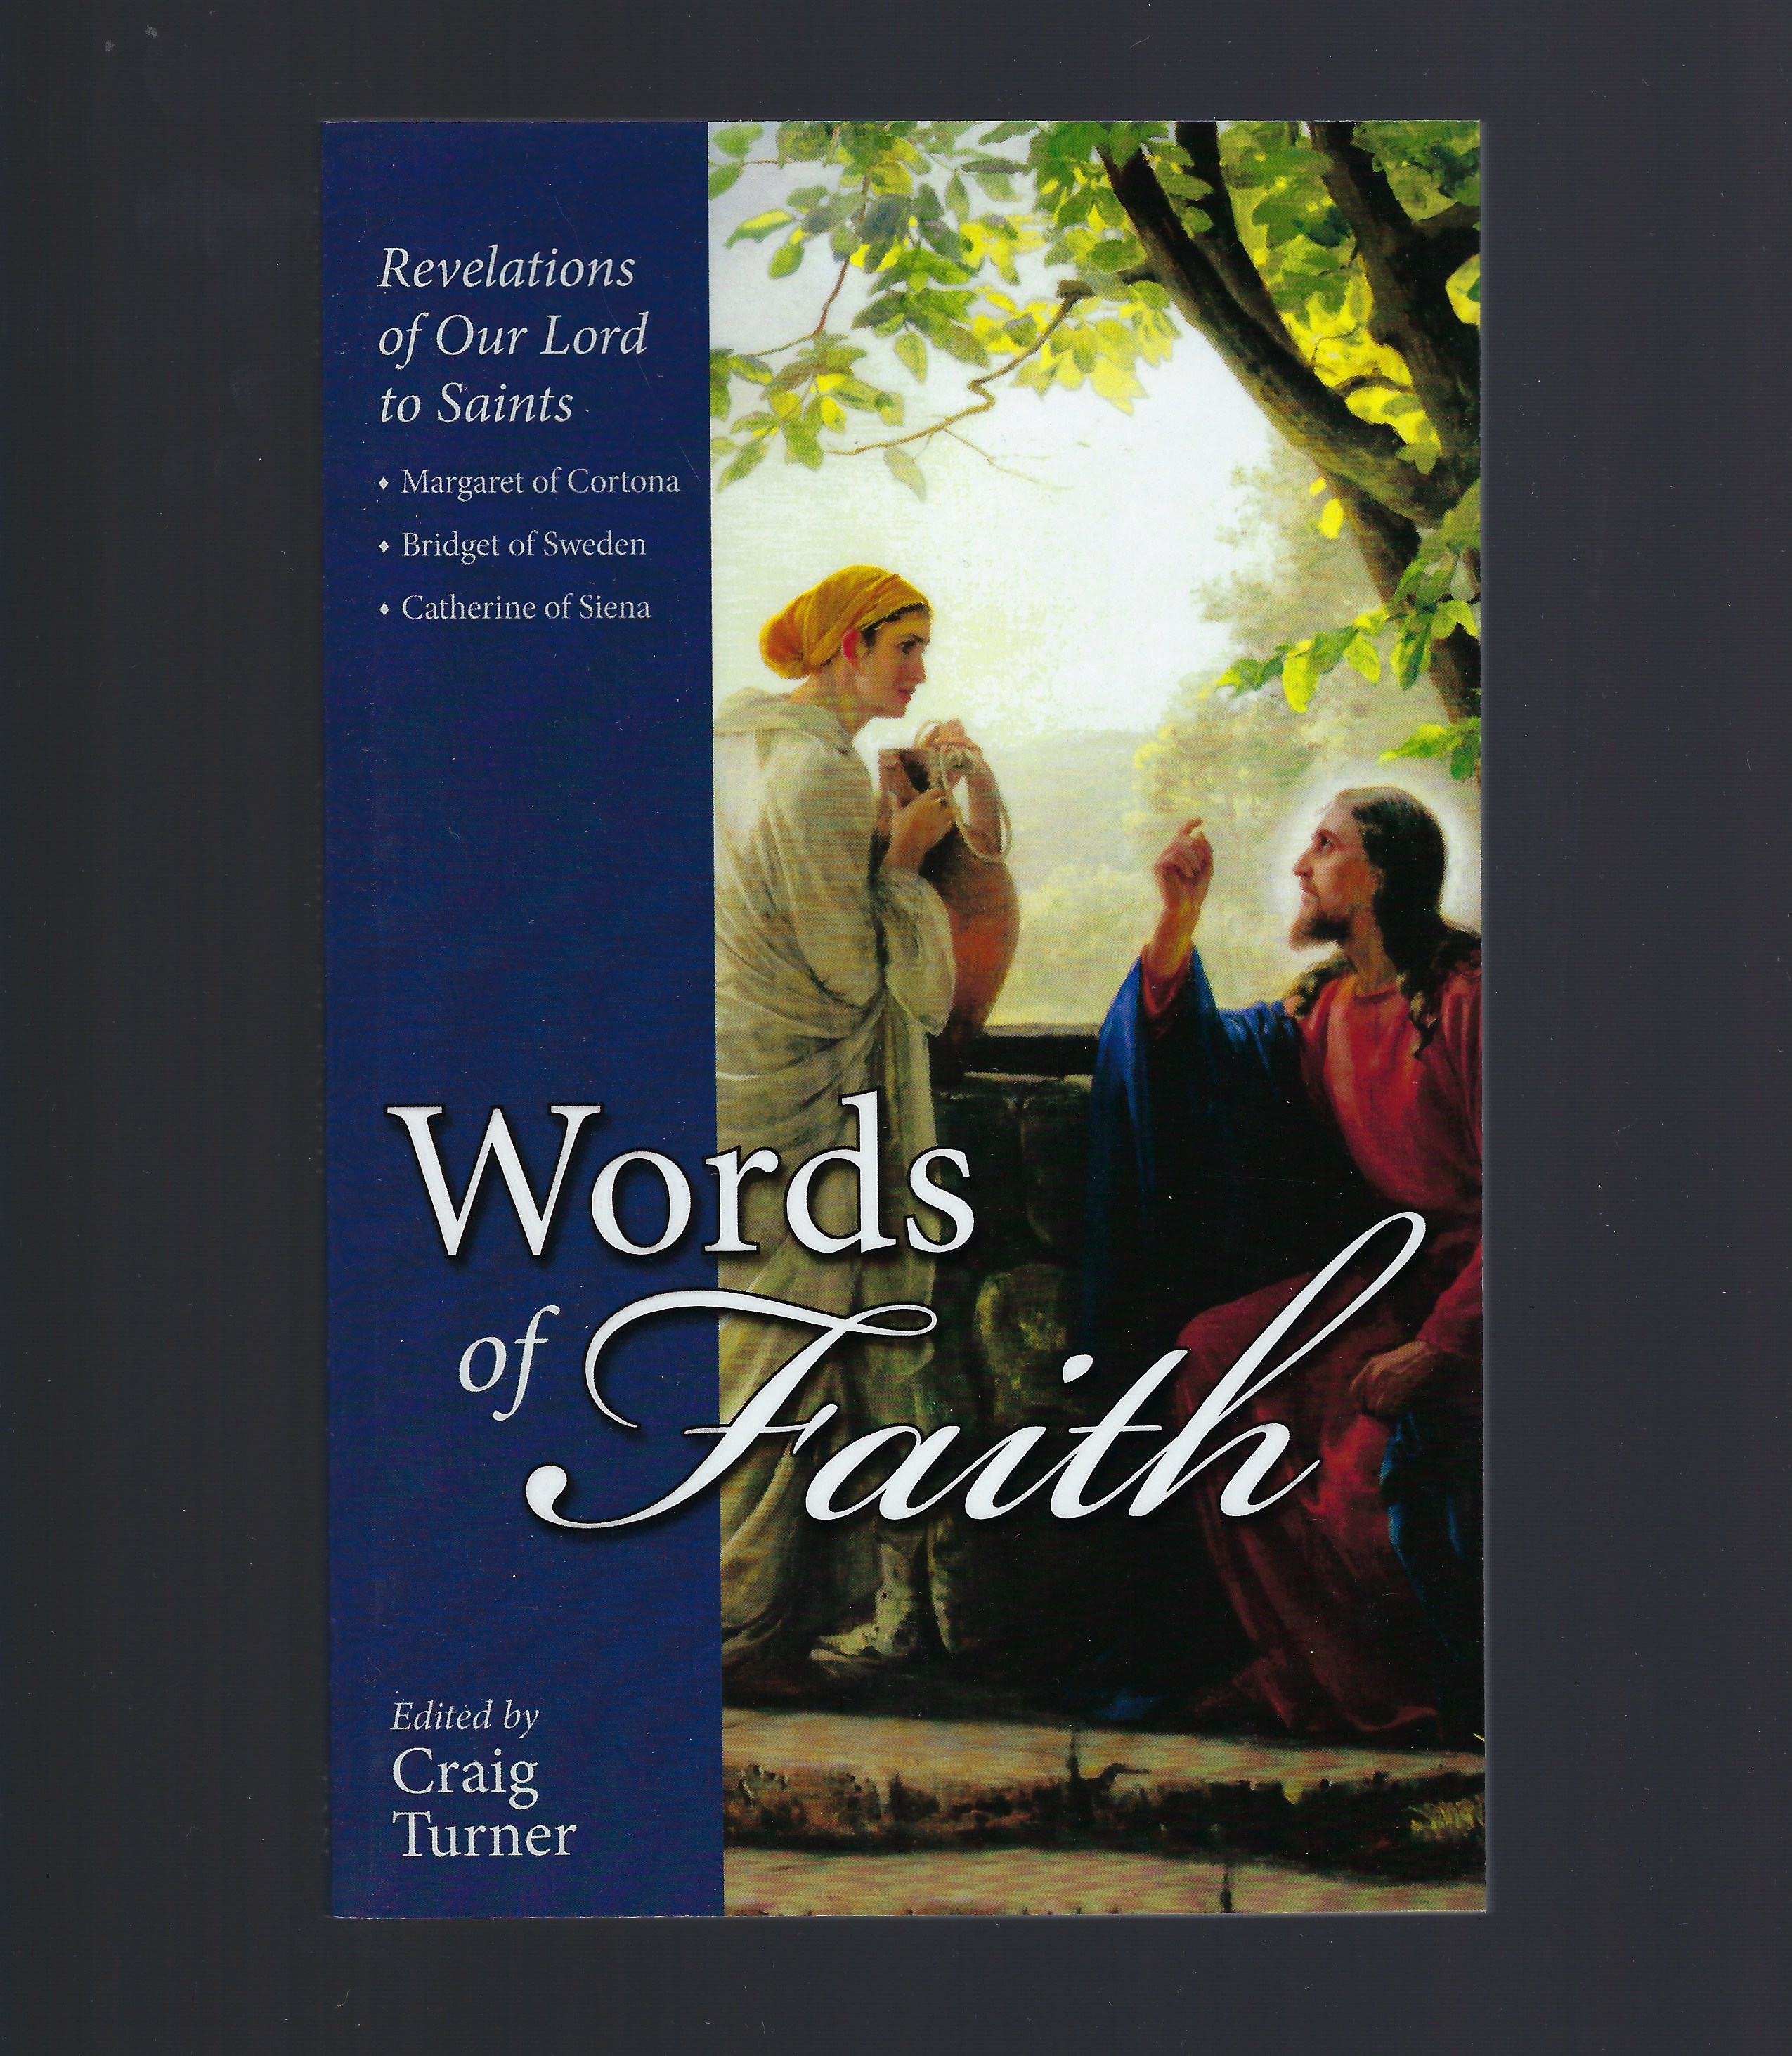 Words of Faith: Revelations of Our Lord to Saints Margaret of Cortona, Bridget of Sweden and Catherine of Siena, Craig, Turner